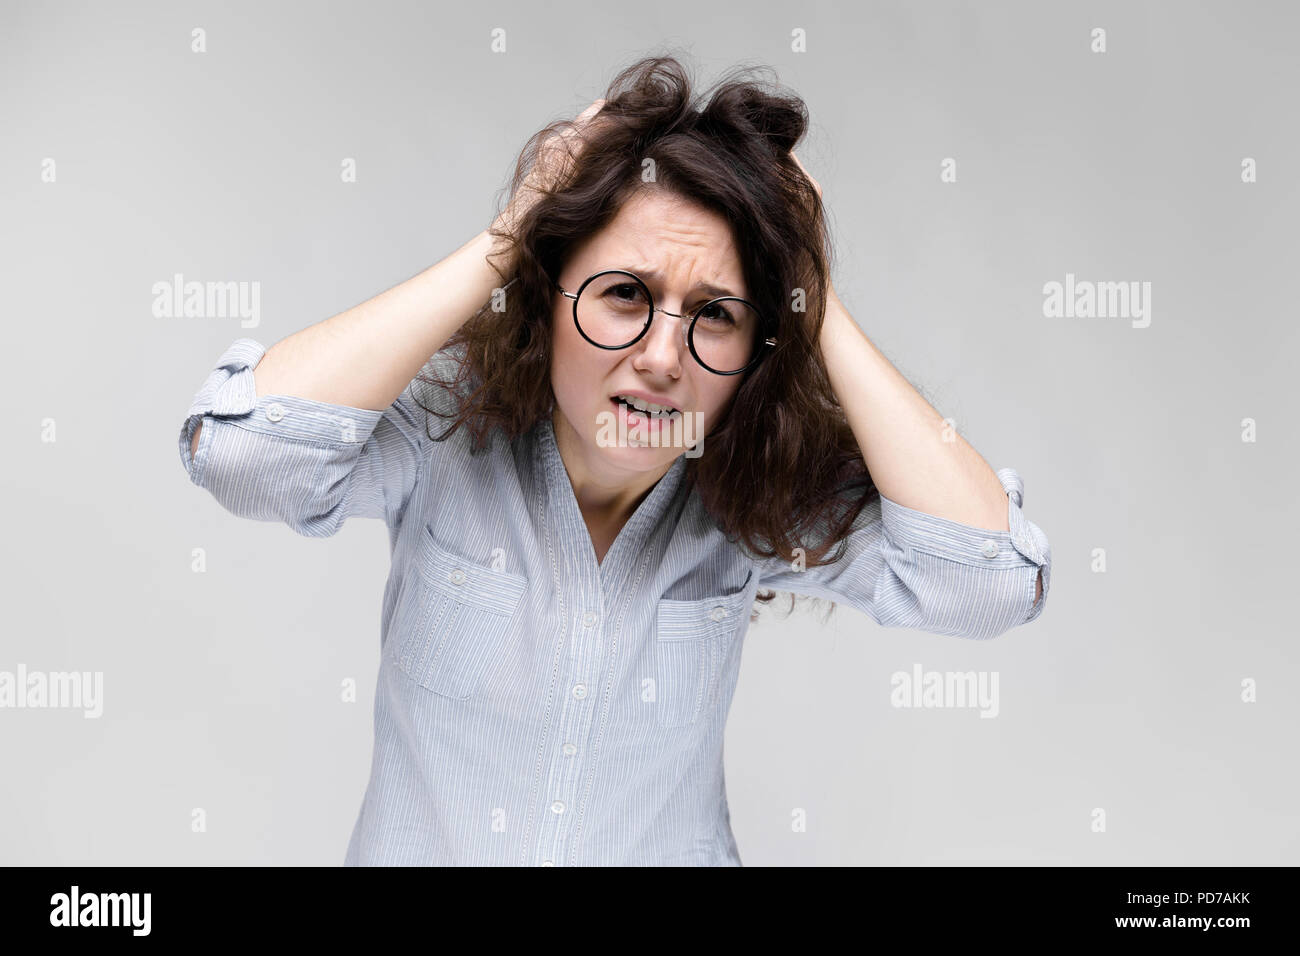 Young brunette girl with glasses. The girl grabbed her head and shouted. - Stock Image